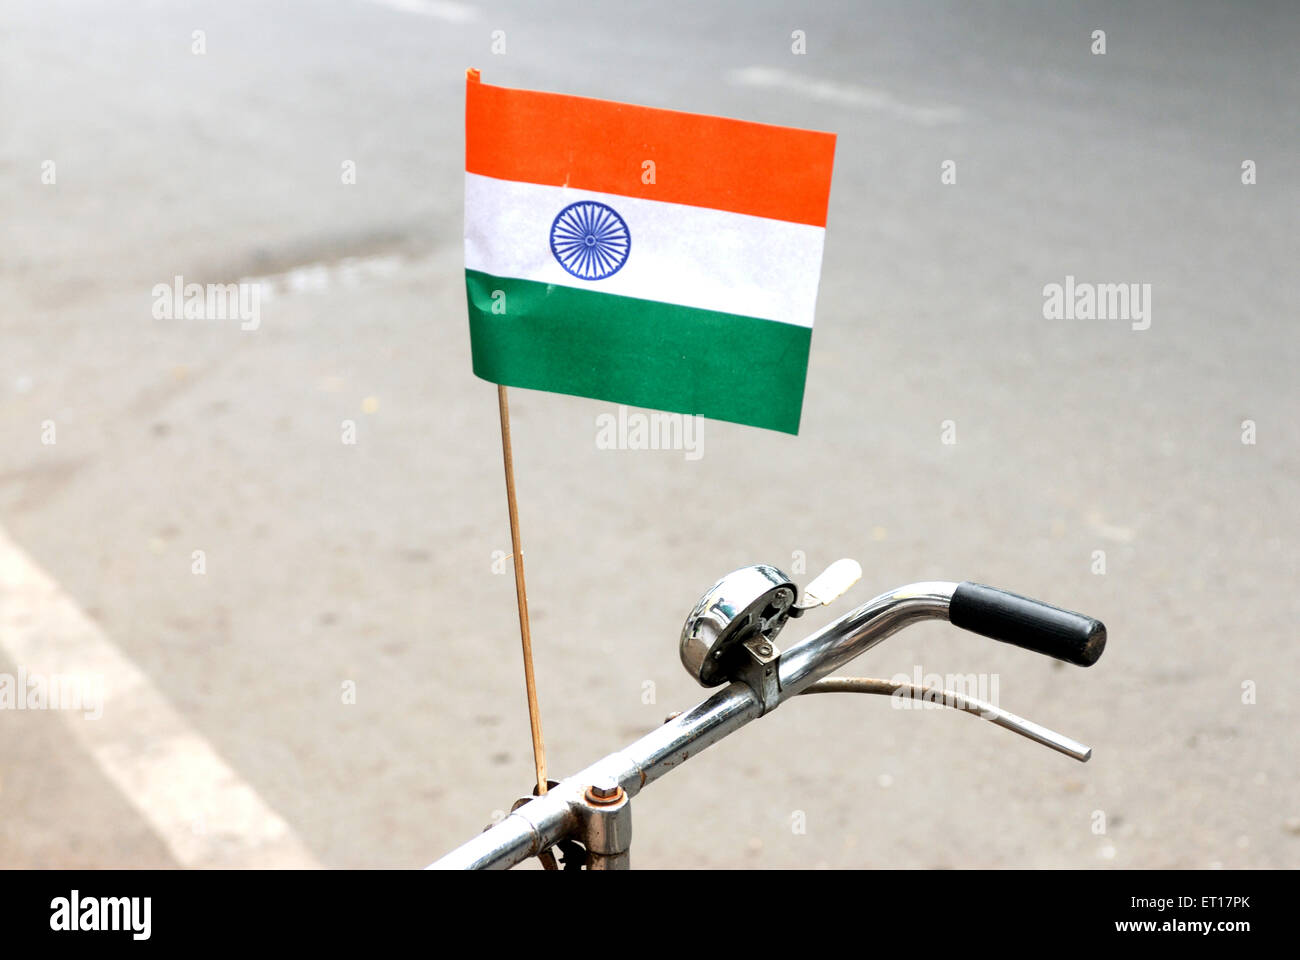 Indian flag on independence day - Stock Image